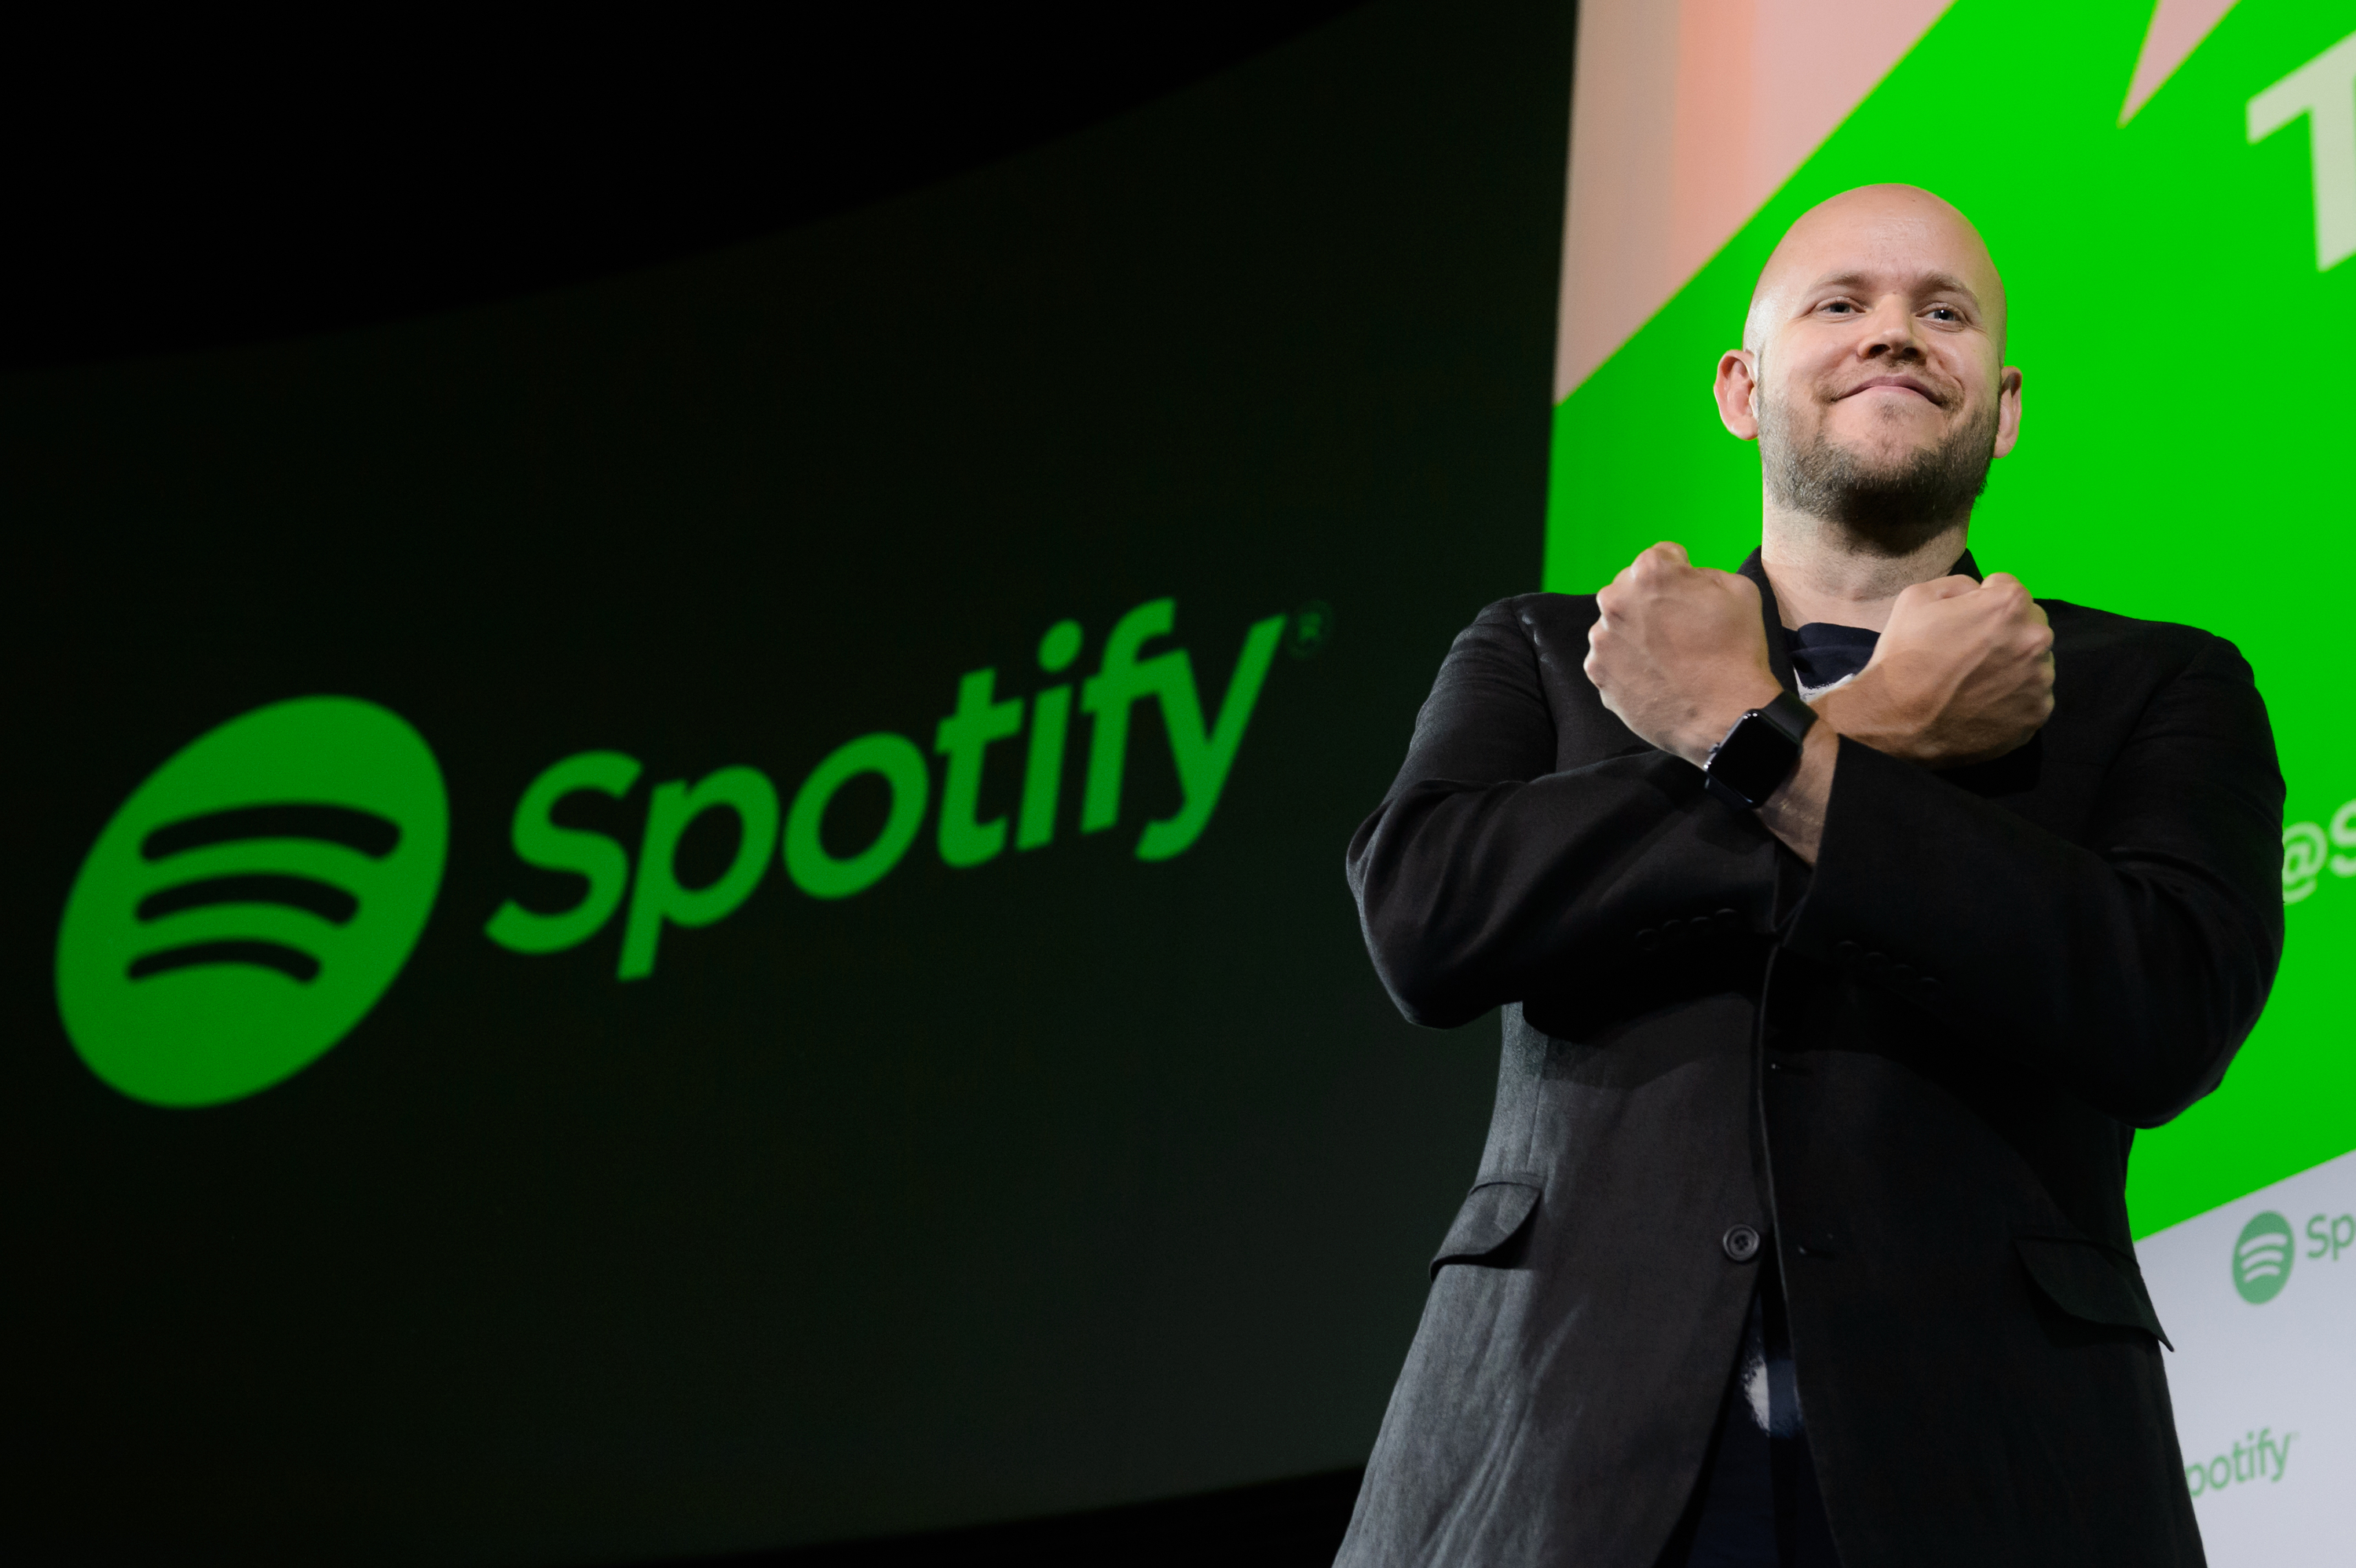 Spotify is overhauling its app to promote its big bet on podcasts